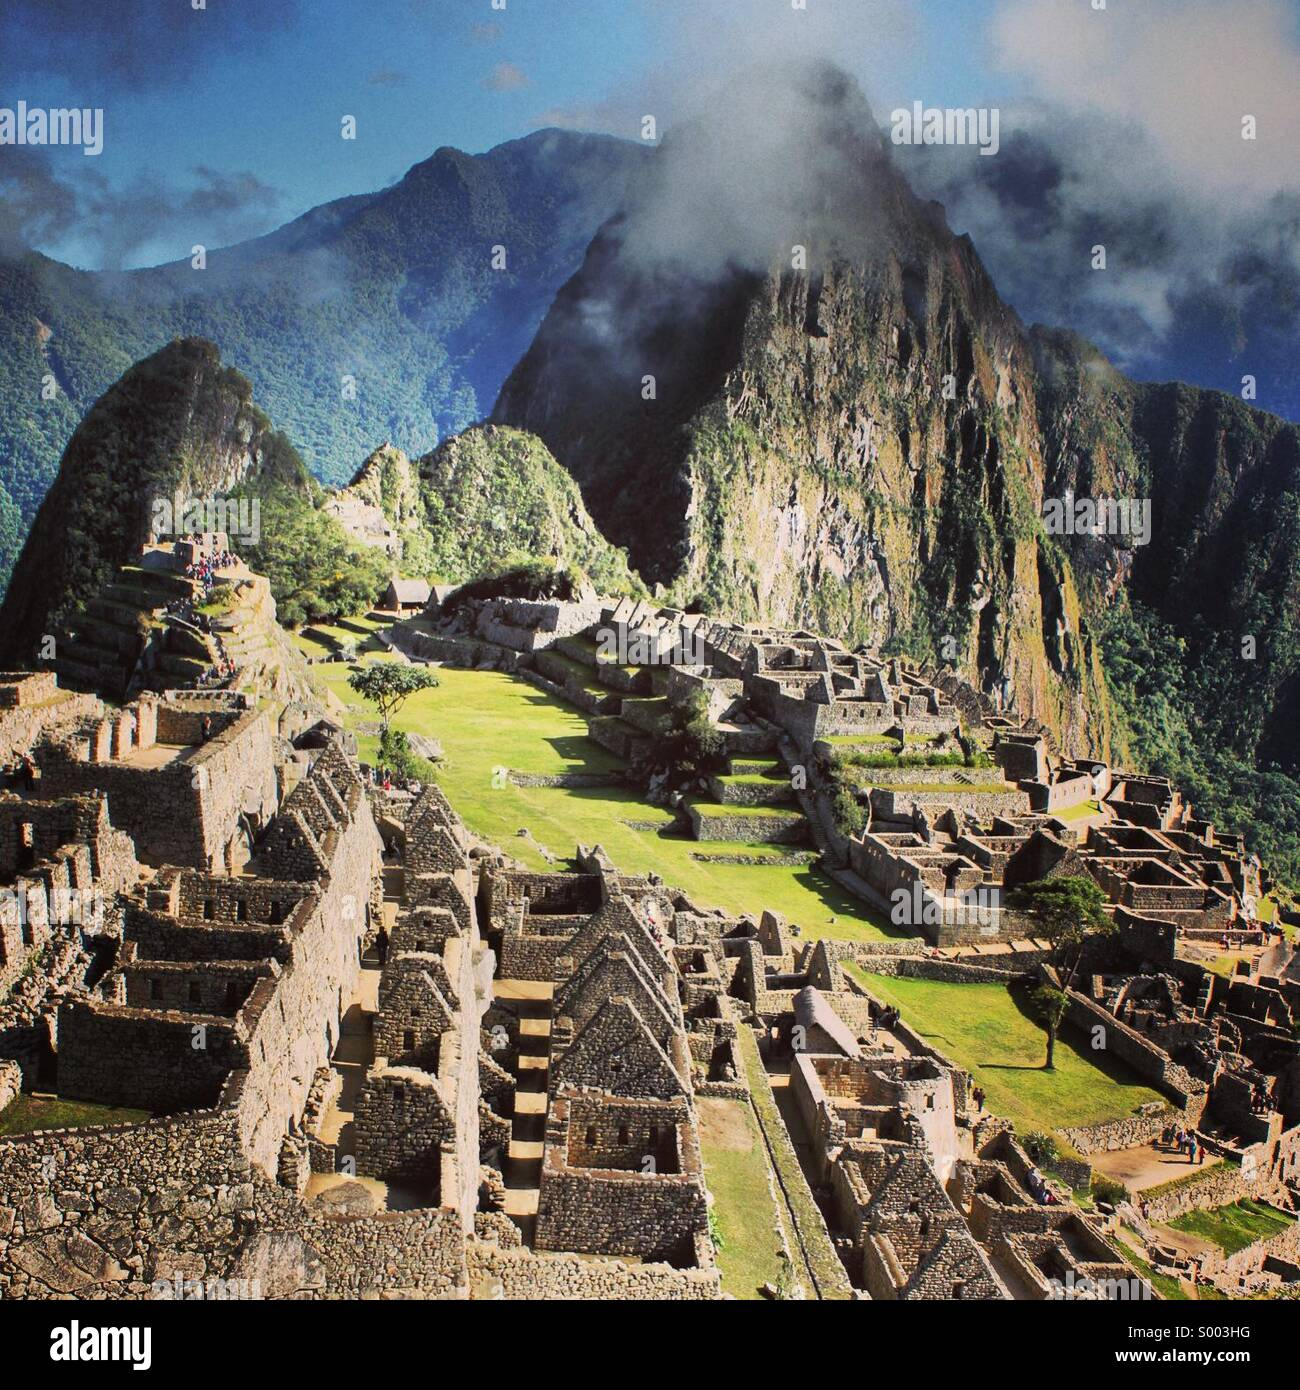 Machu Picchu, edited with Instagram's X-Pro II filter. - Stock Image